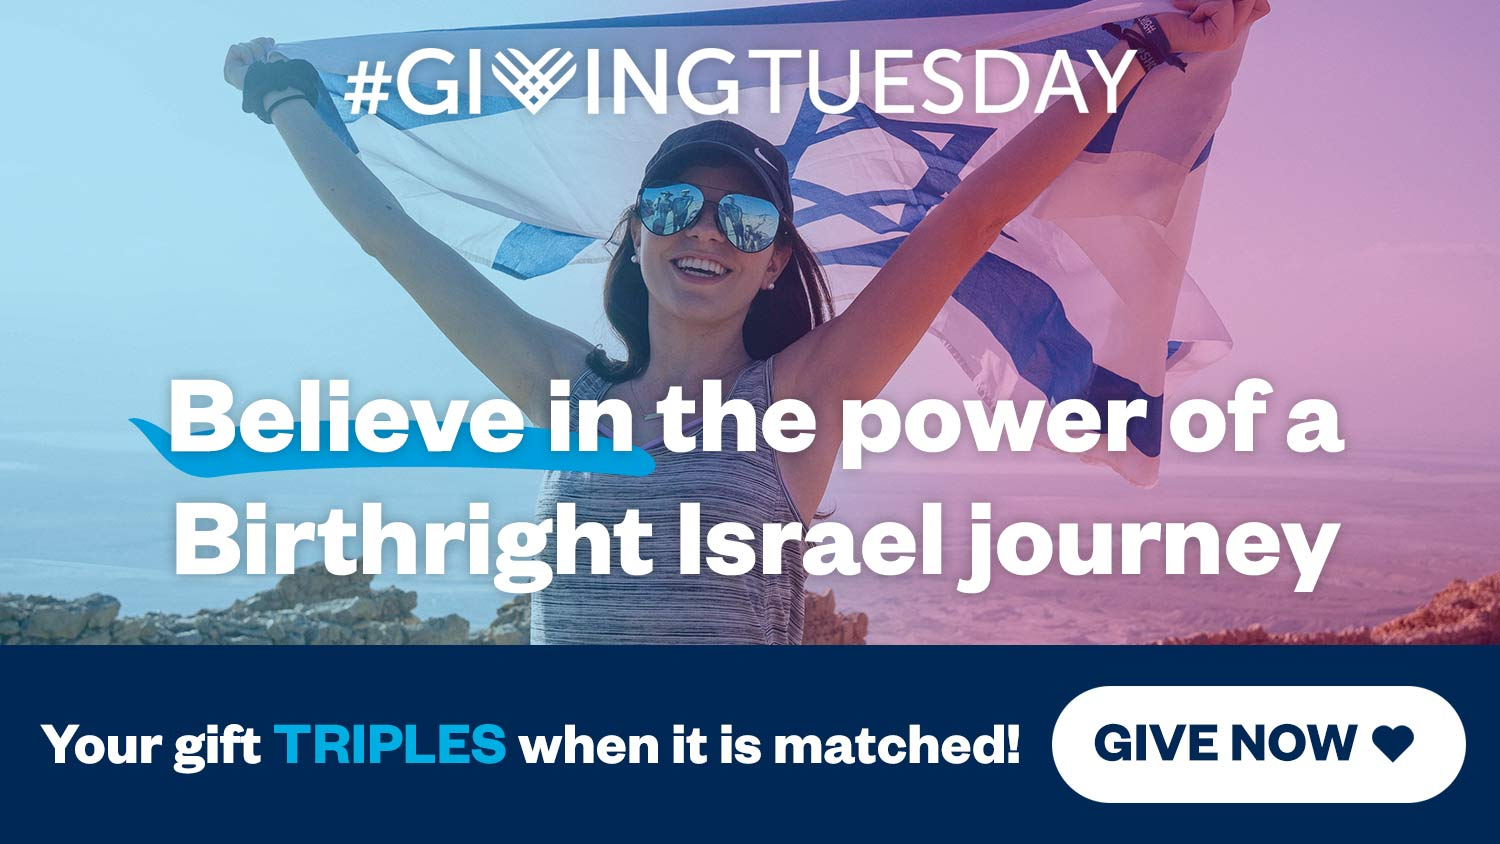 It's Giving Tuesday! Believe in the power of a Birthright Israel journey and triple your gift today